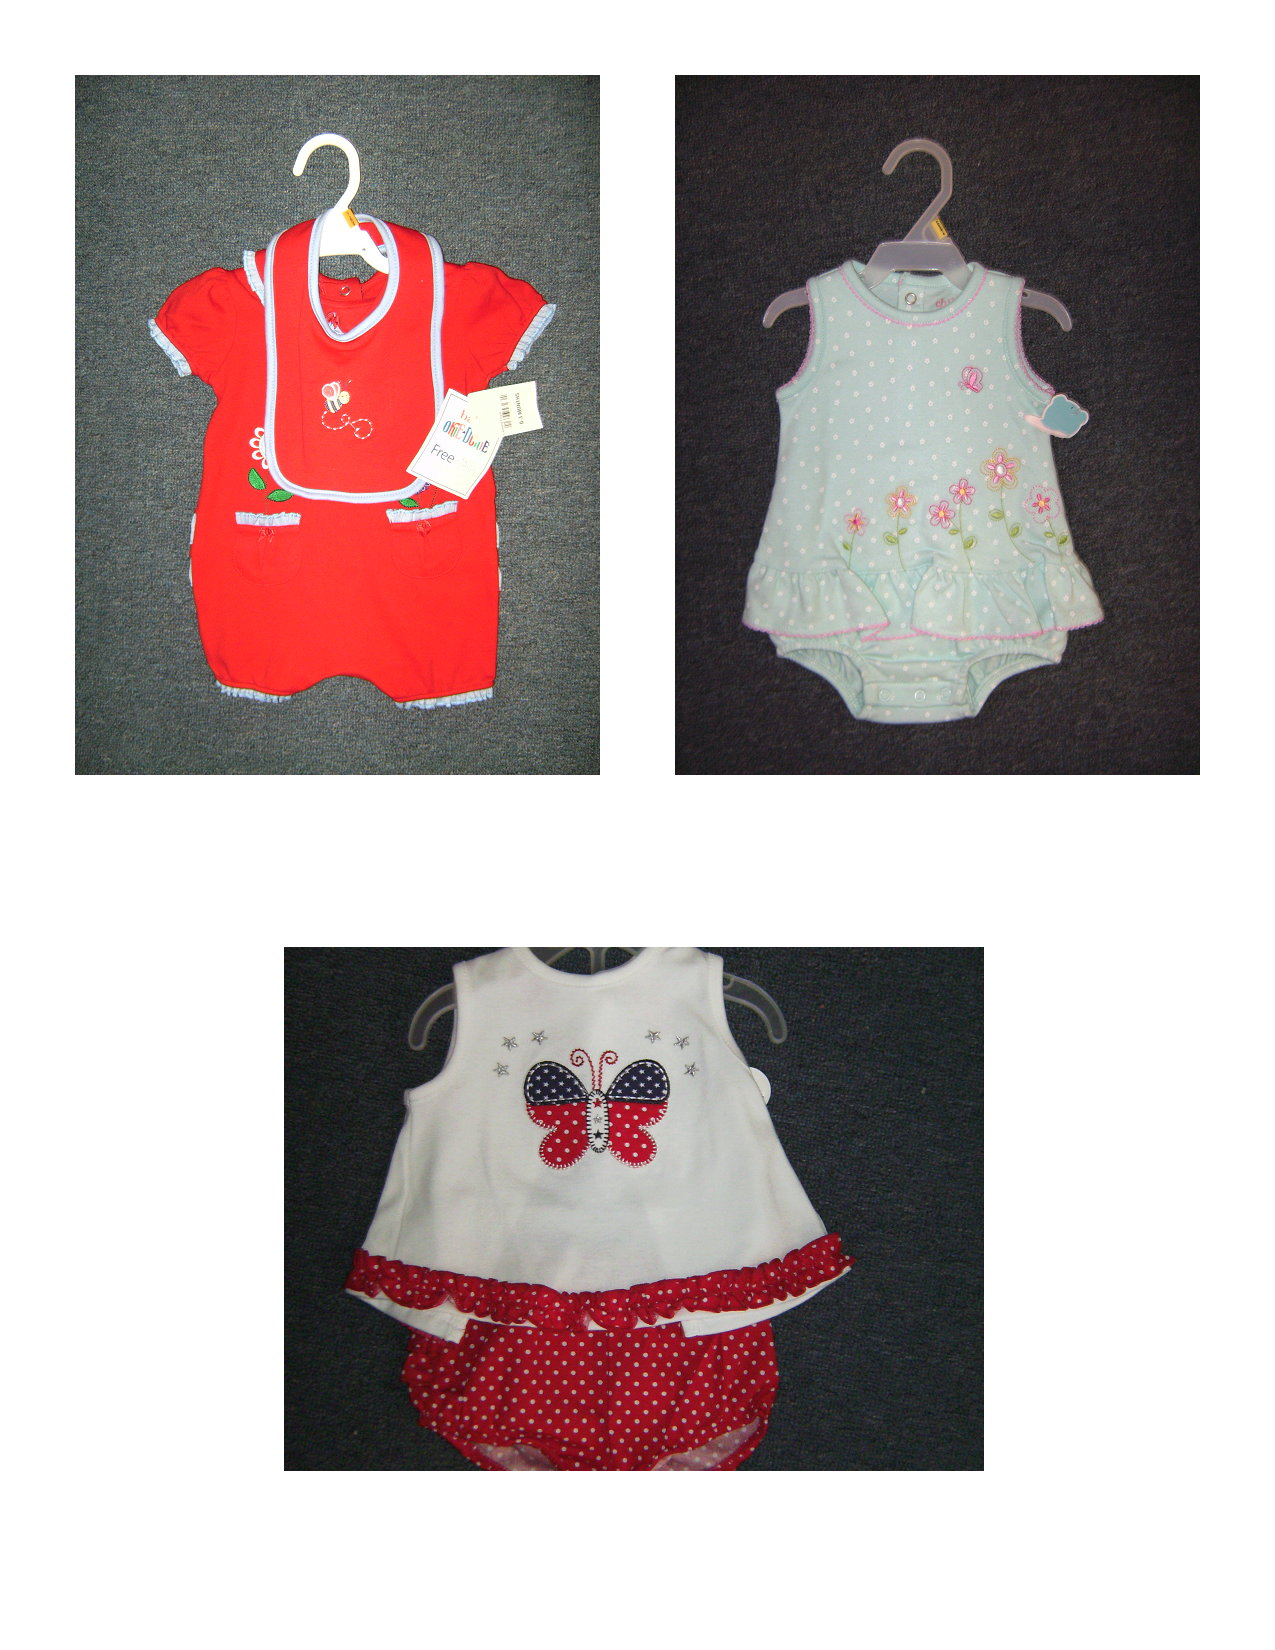 new baby girl lot clothes. red.